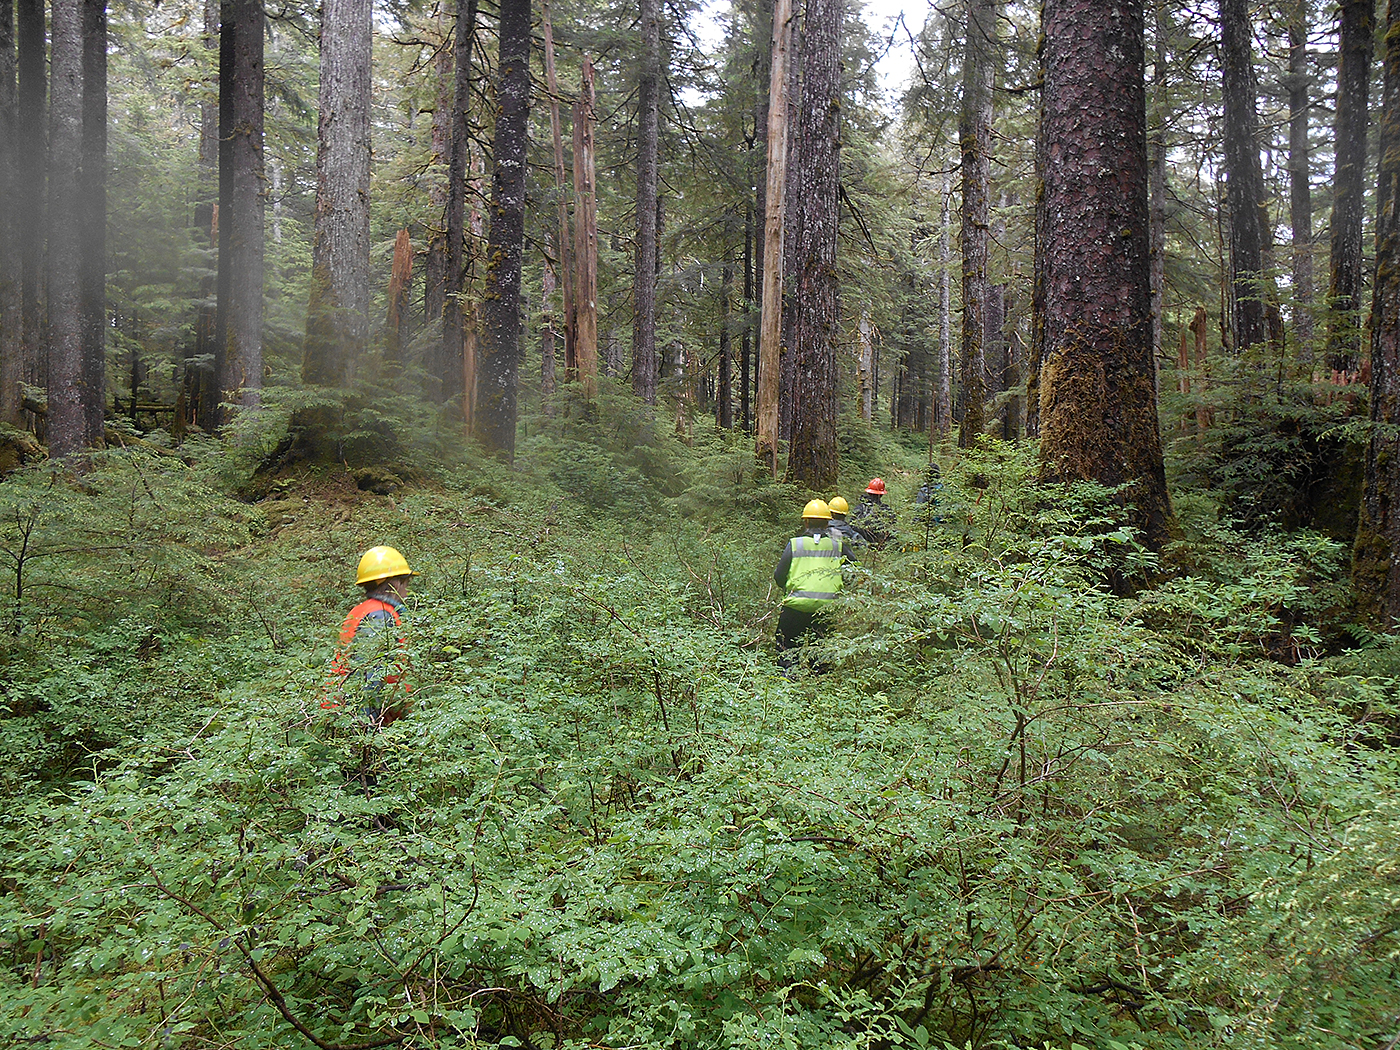 Photo: a line of people in brightly colored safety vests and hard hats walk through dense, lush forests.